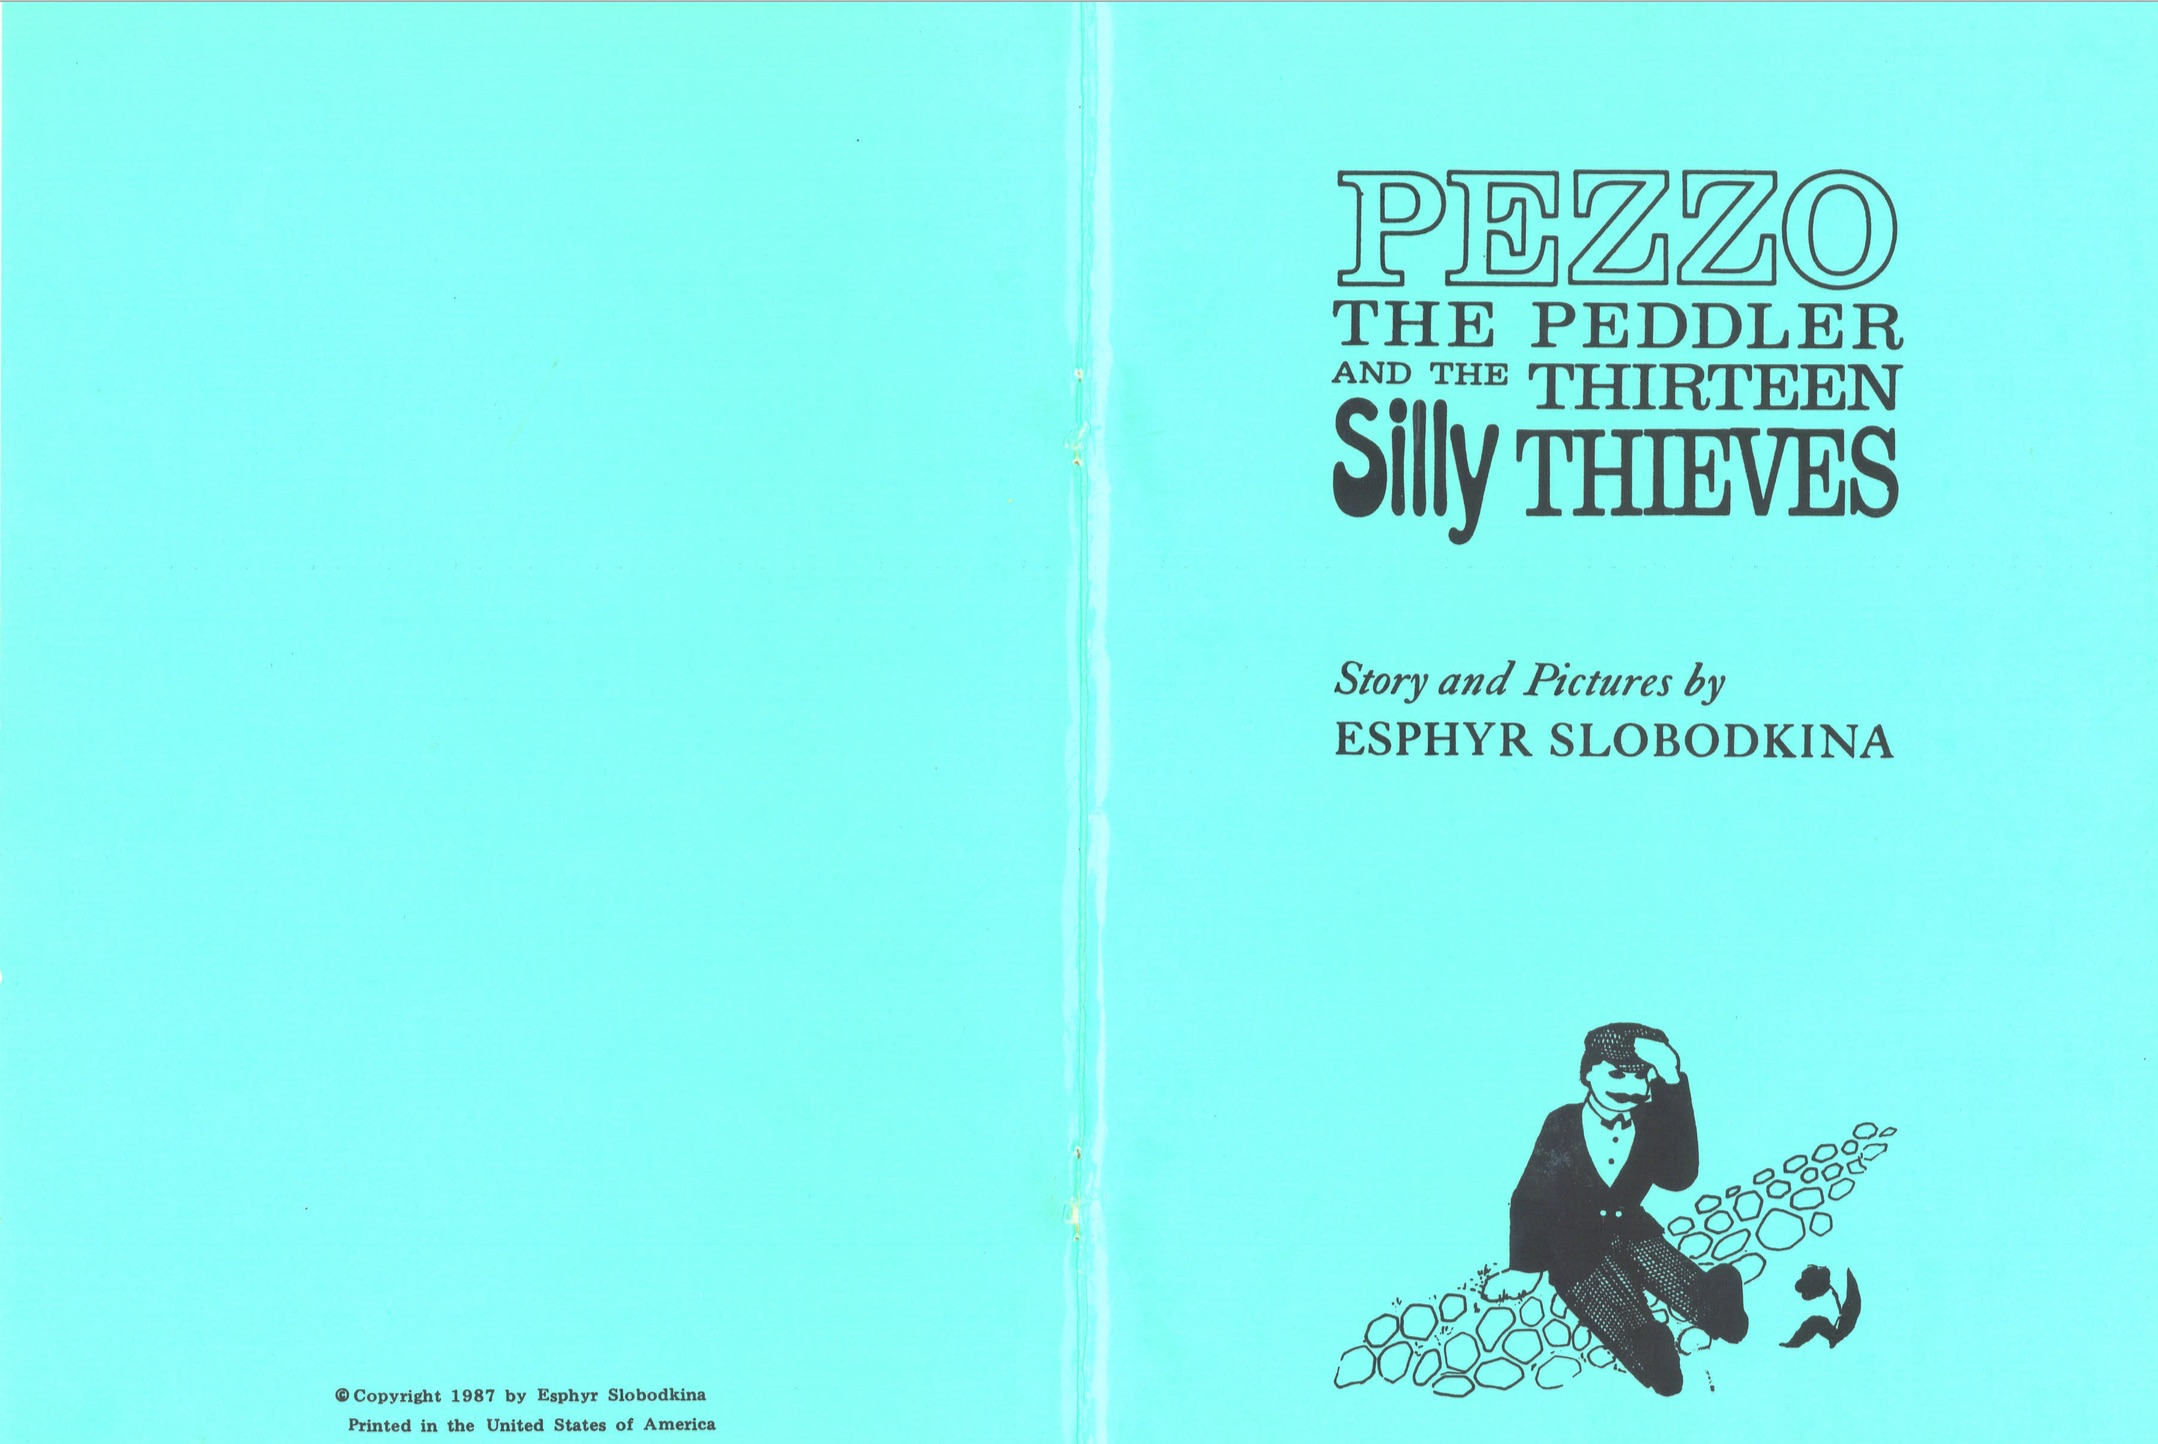 pezzo-the-peddler-and-the-thirteen-silly-theives-1